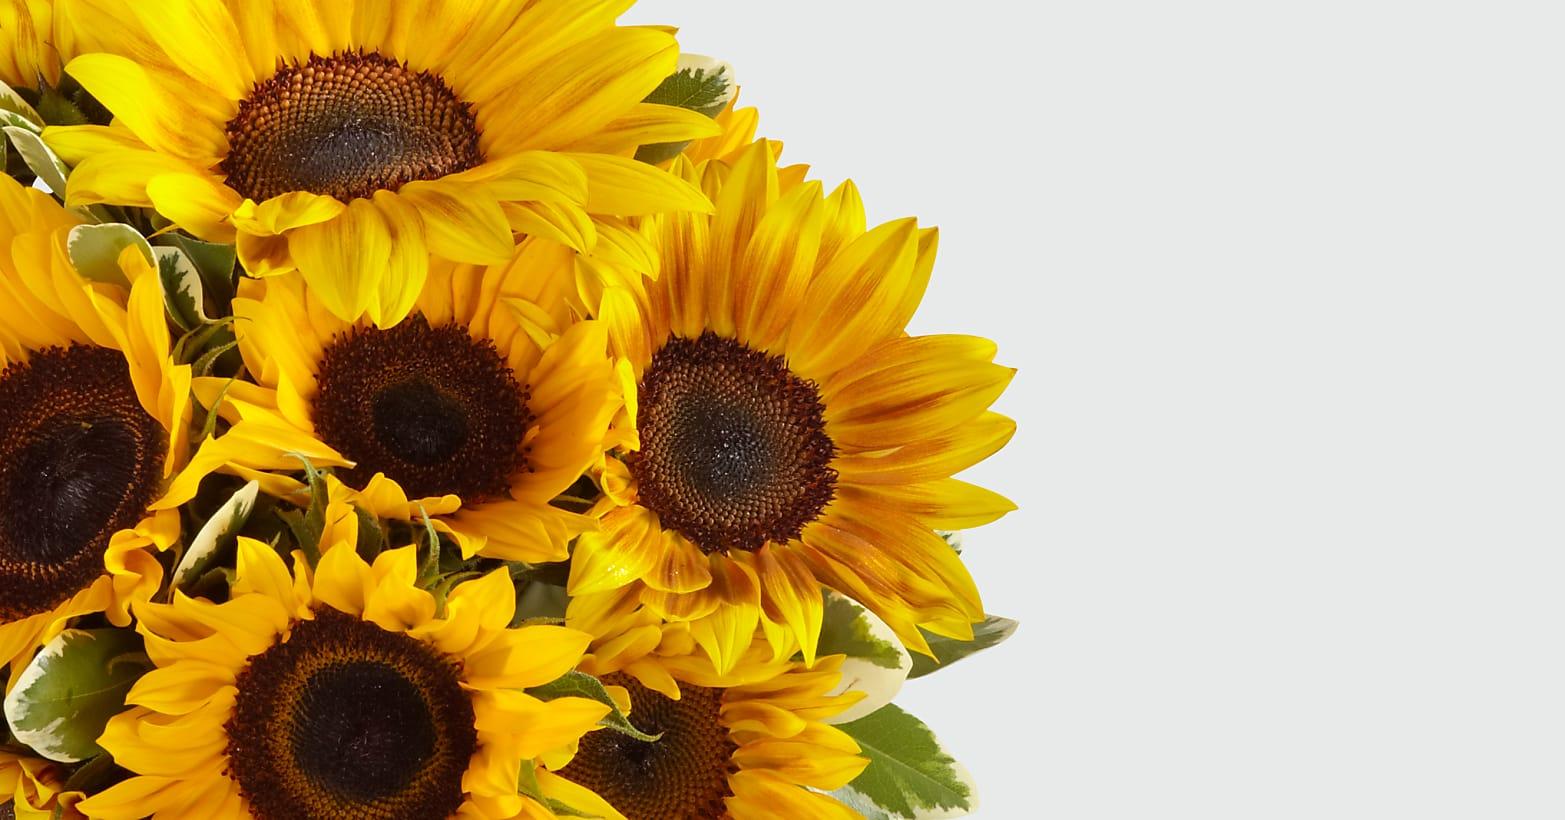 Endless Summer Sunflower Bouquet - Image 4 Of 4